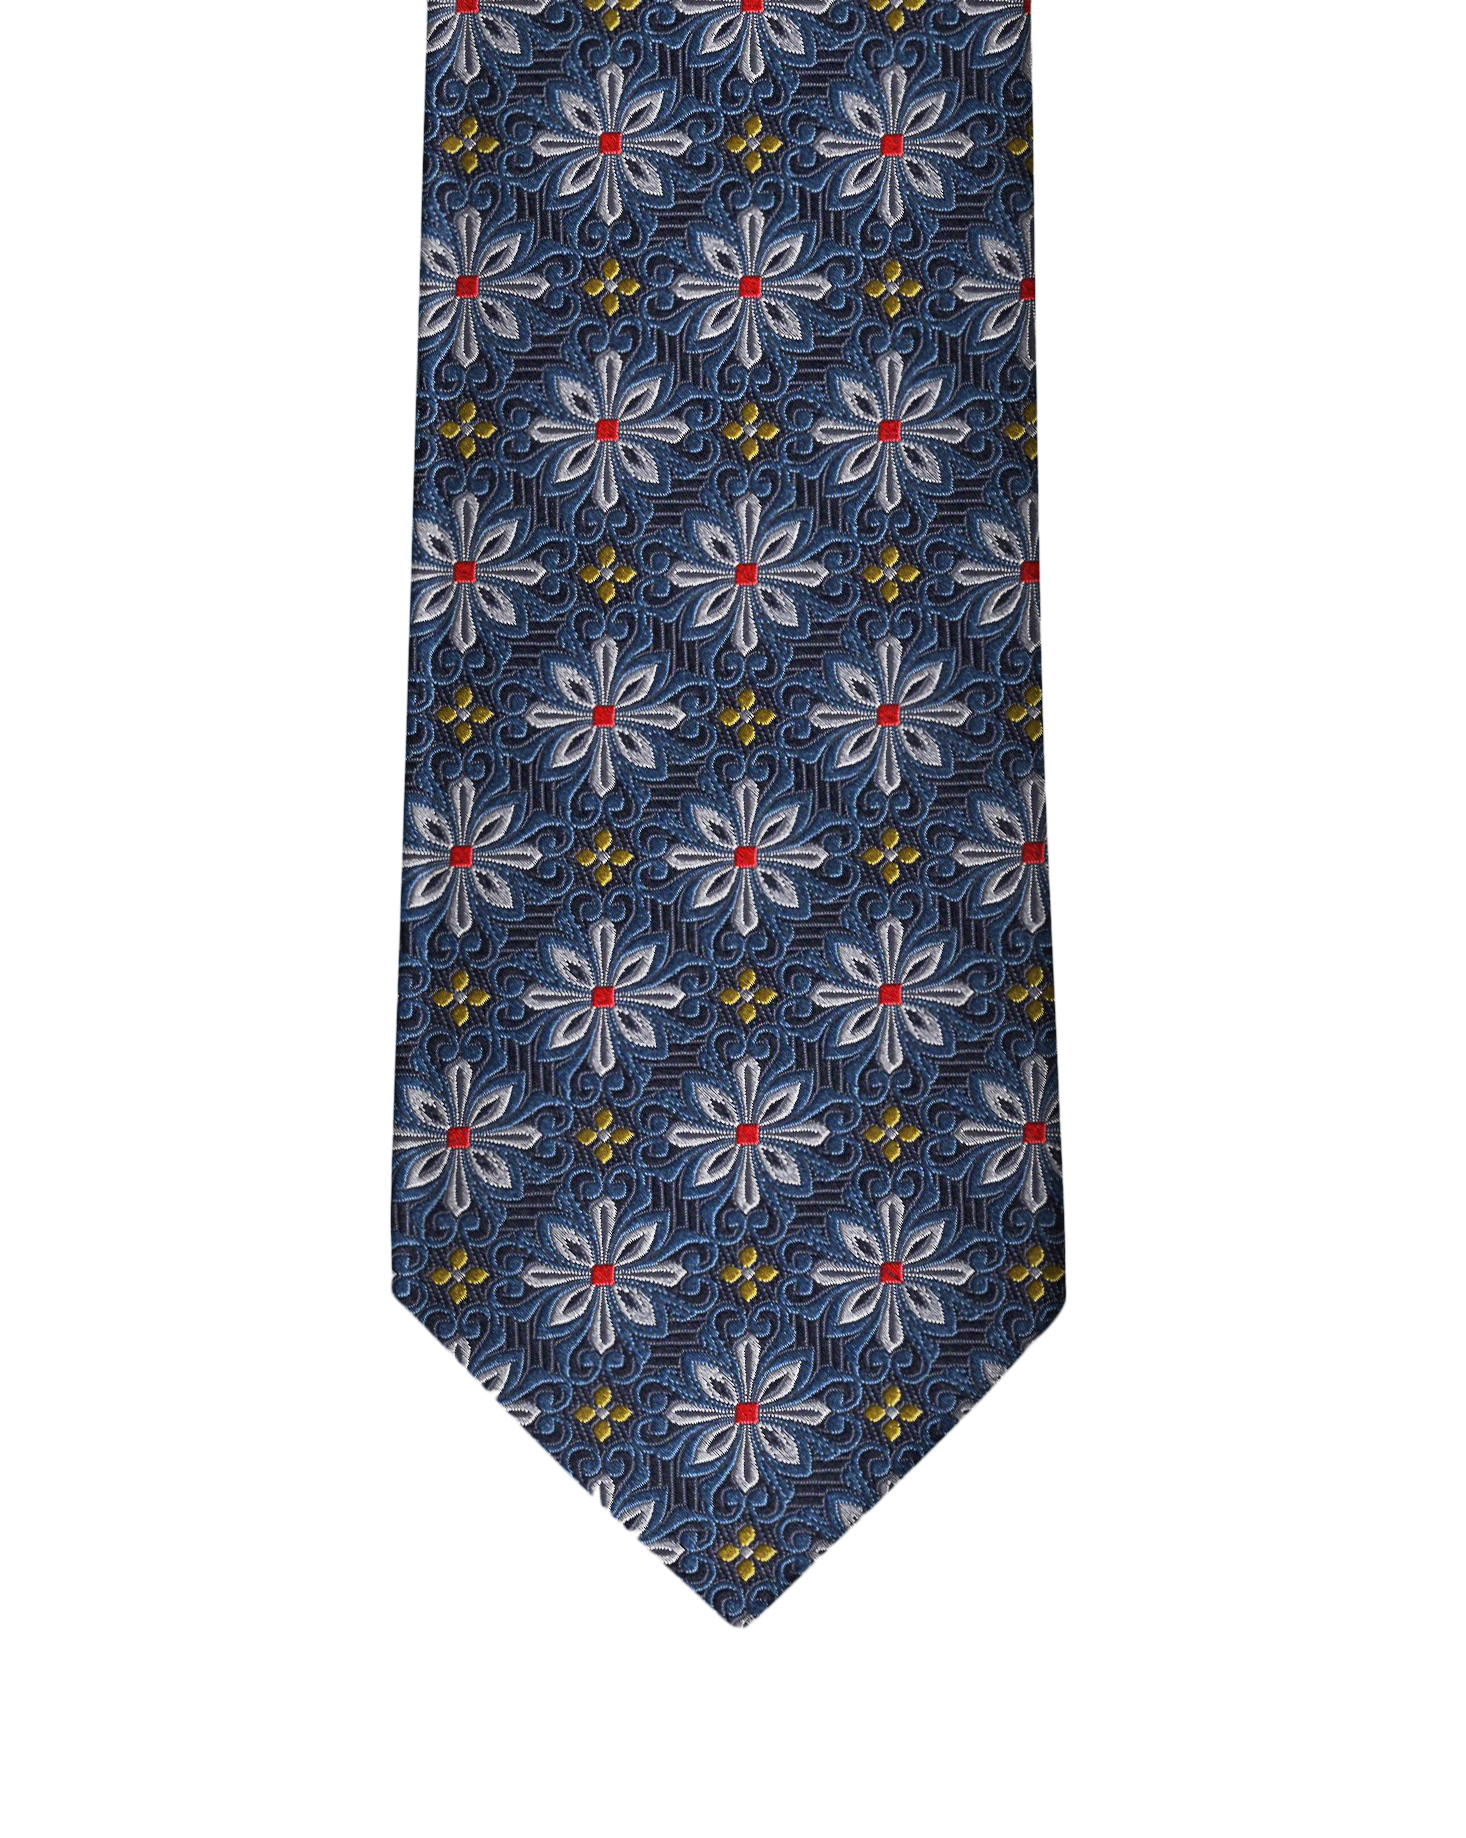 Navy Blue Medallion Necktie